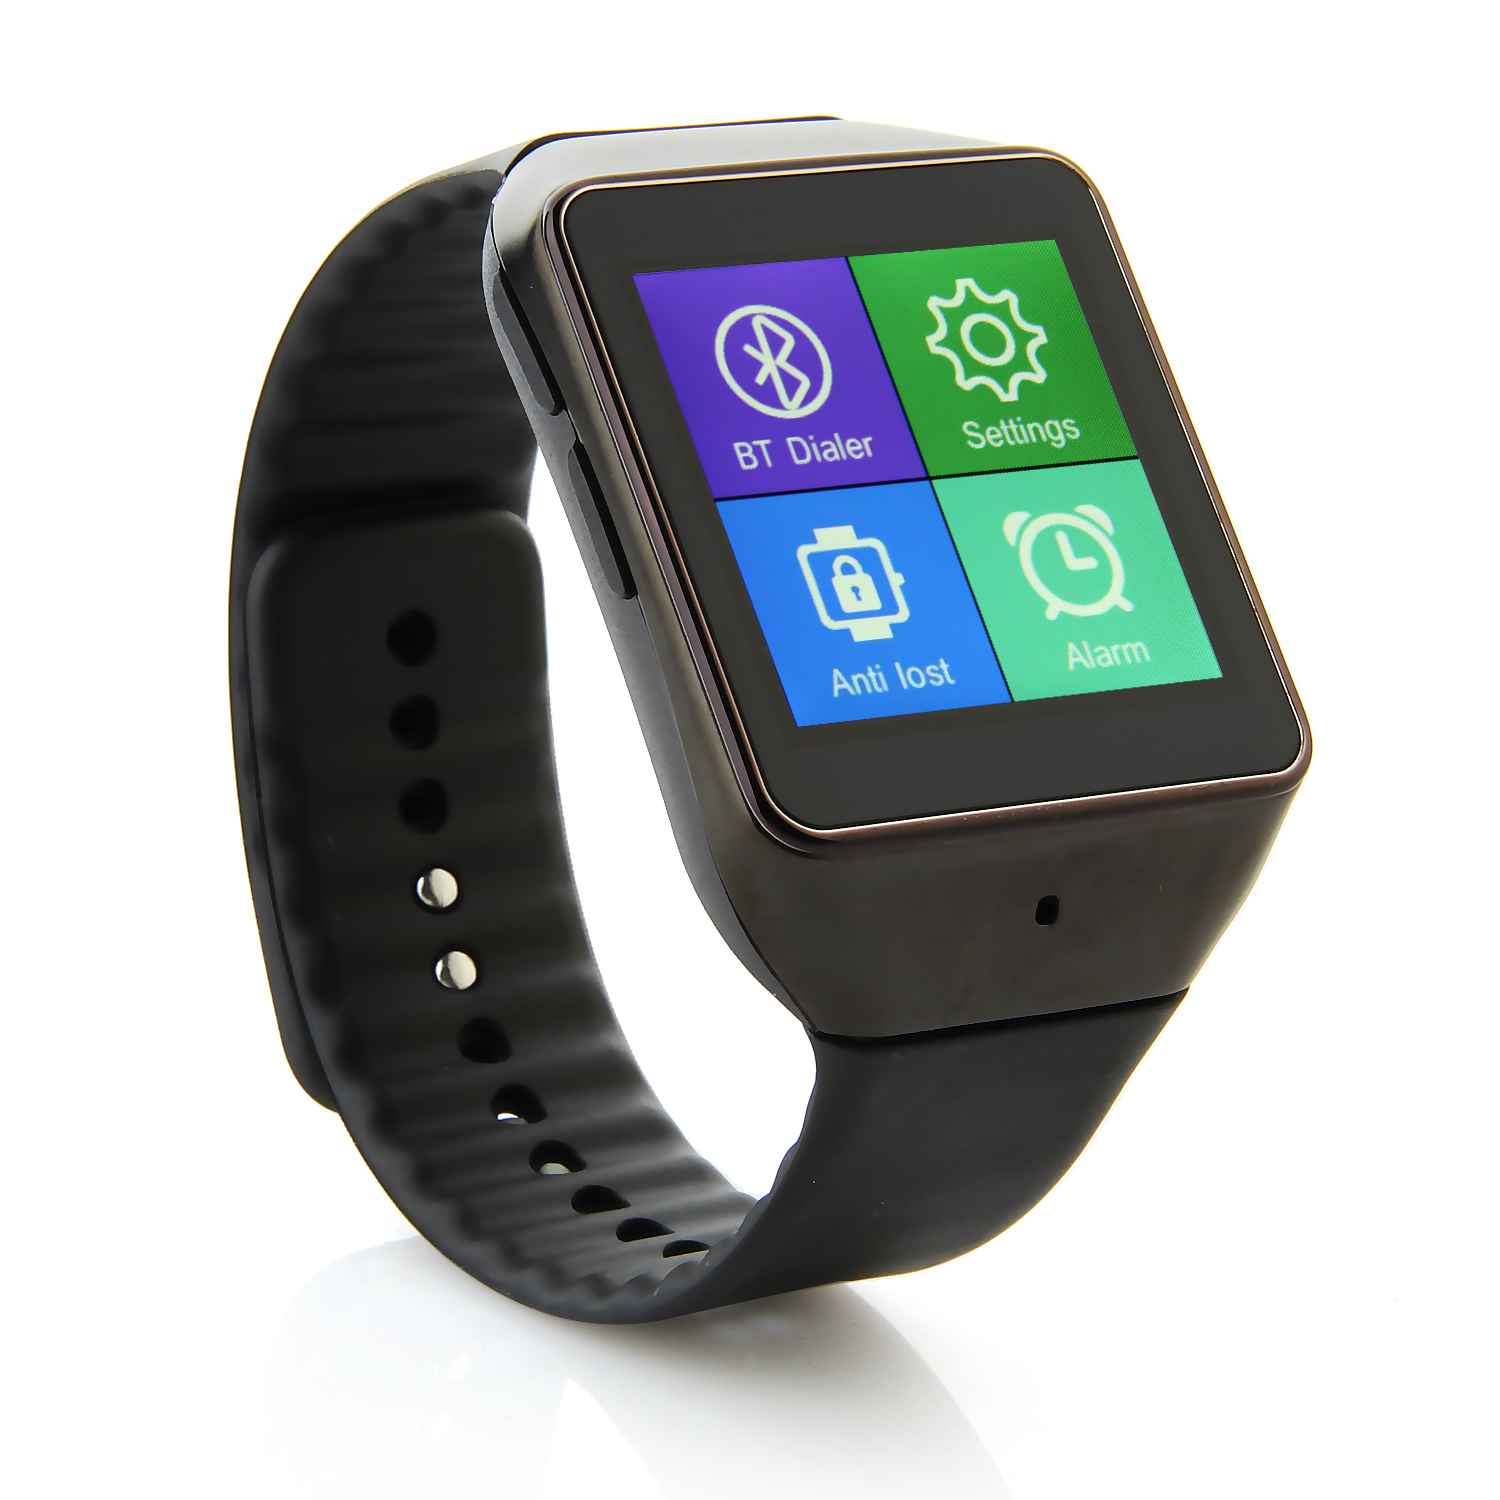 Atongm W006 Smart Bluetooth Watch 1.54 Inch Touch Screen with Mic - Black